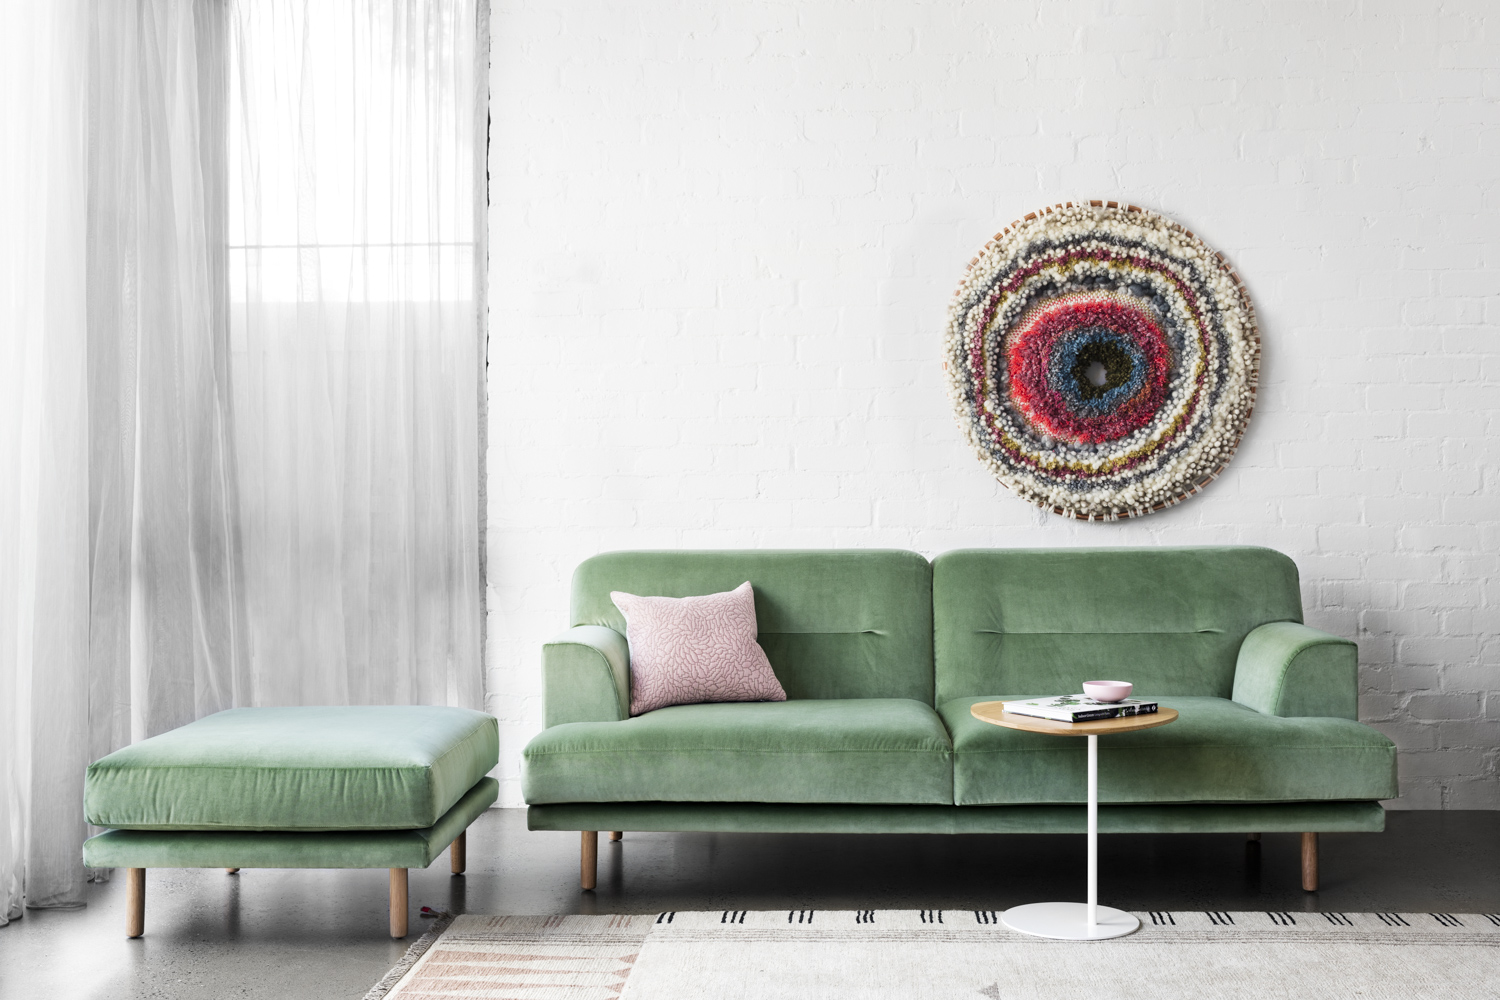 Camille sofa, 2.5 seater and ottoman in Velvet with Zoe table. Woven wall piece by  Tammy Kanat .